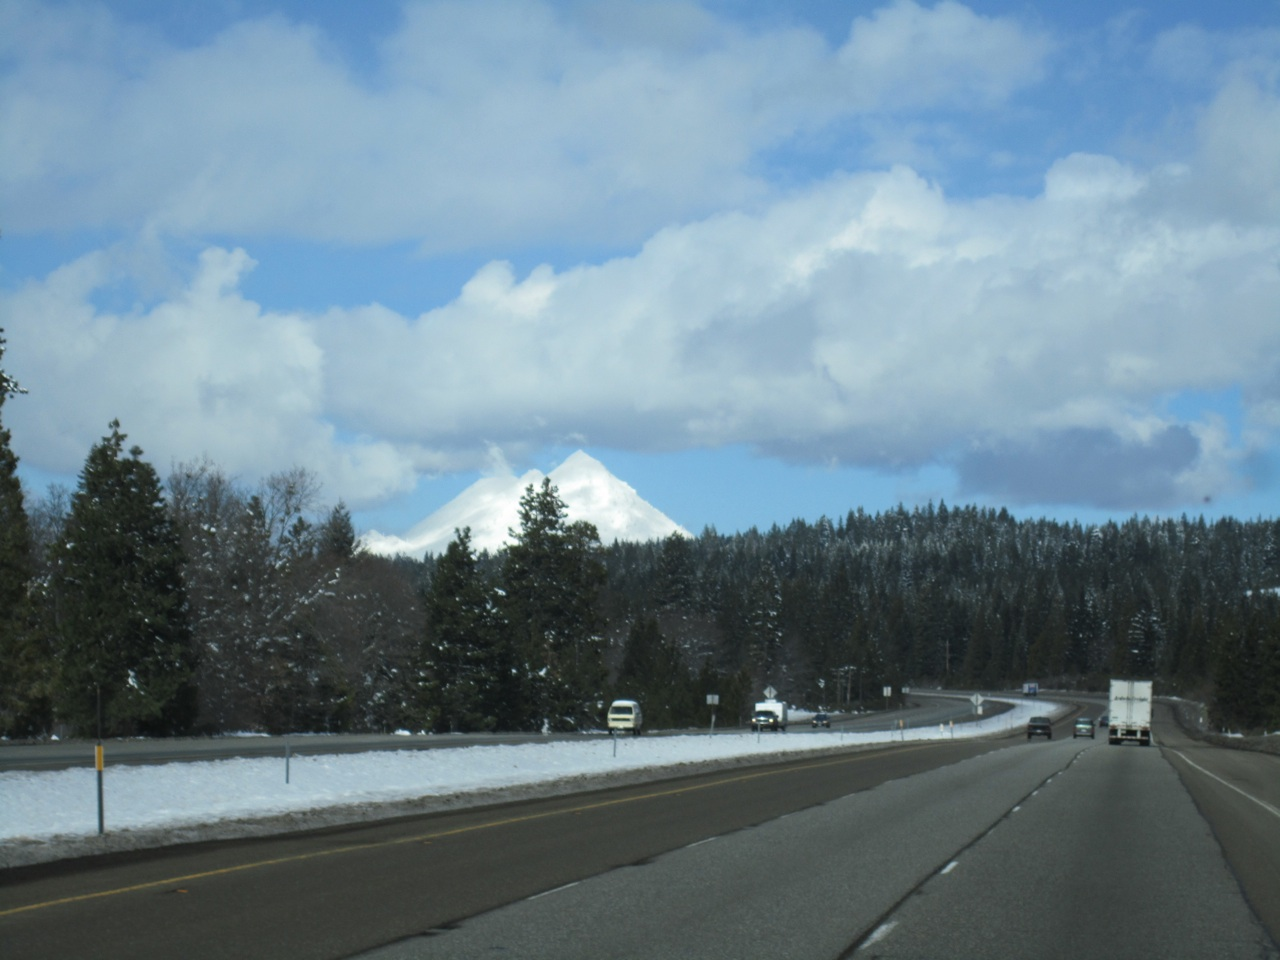 What We Thought Was Mt. Shasta.  It Actually Is Black Butte.